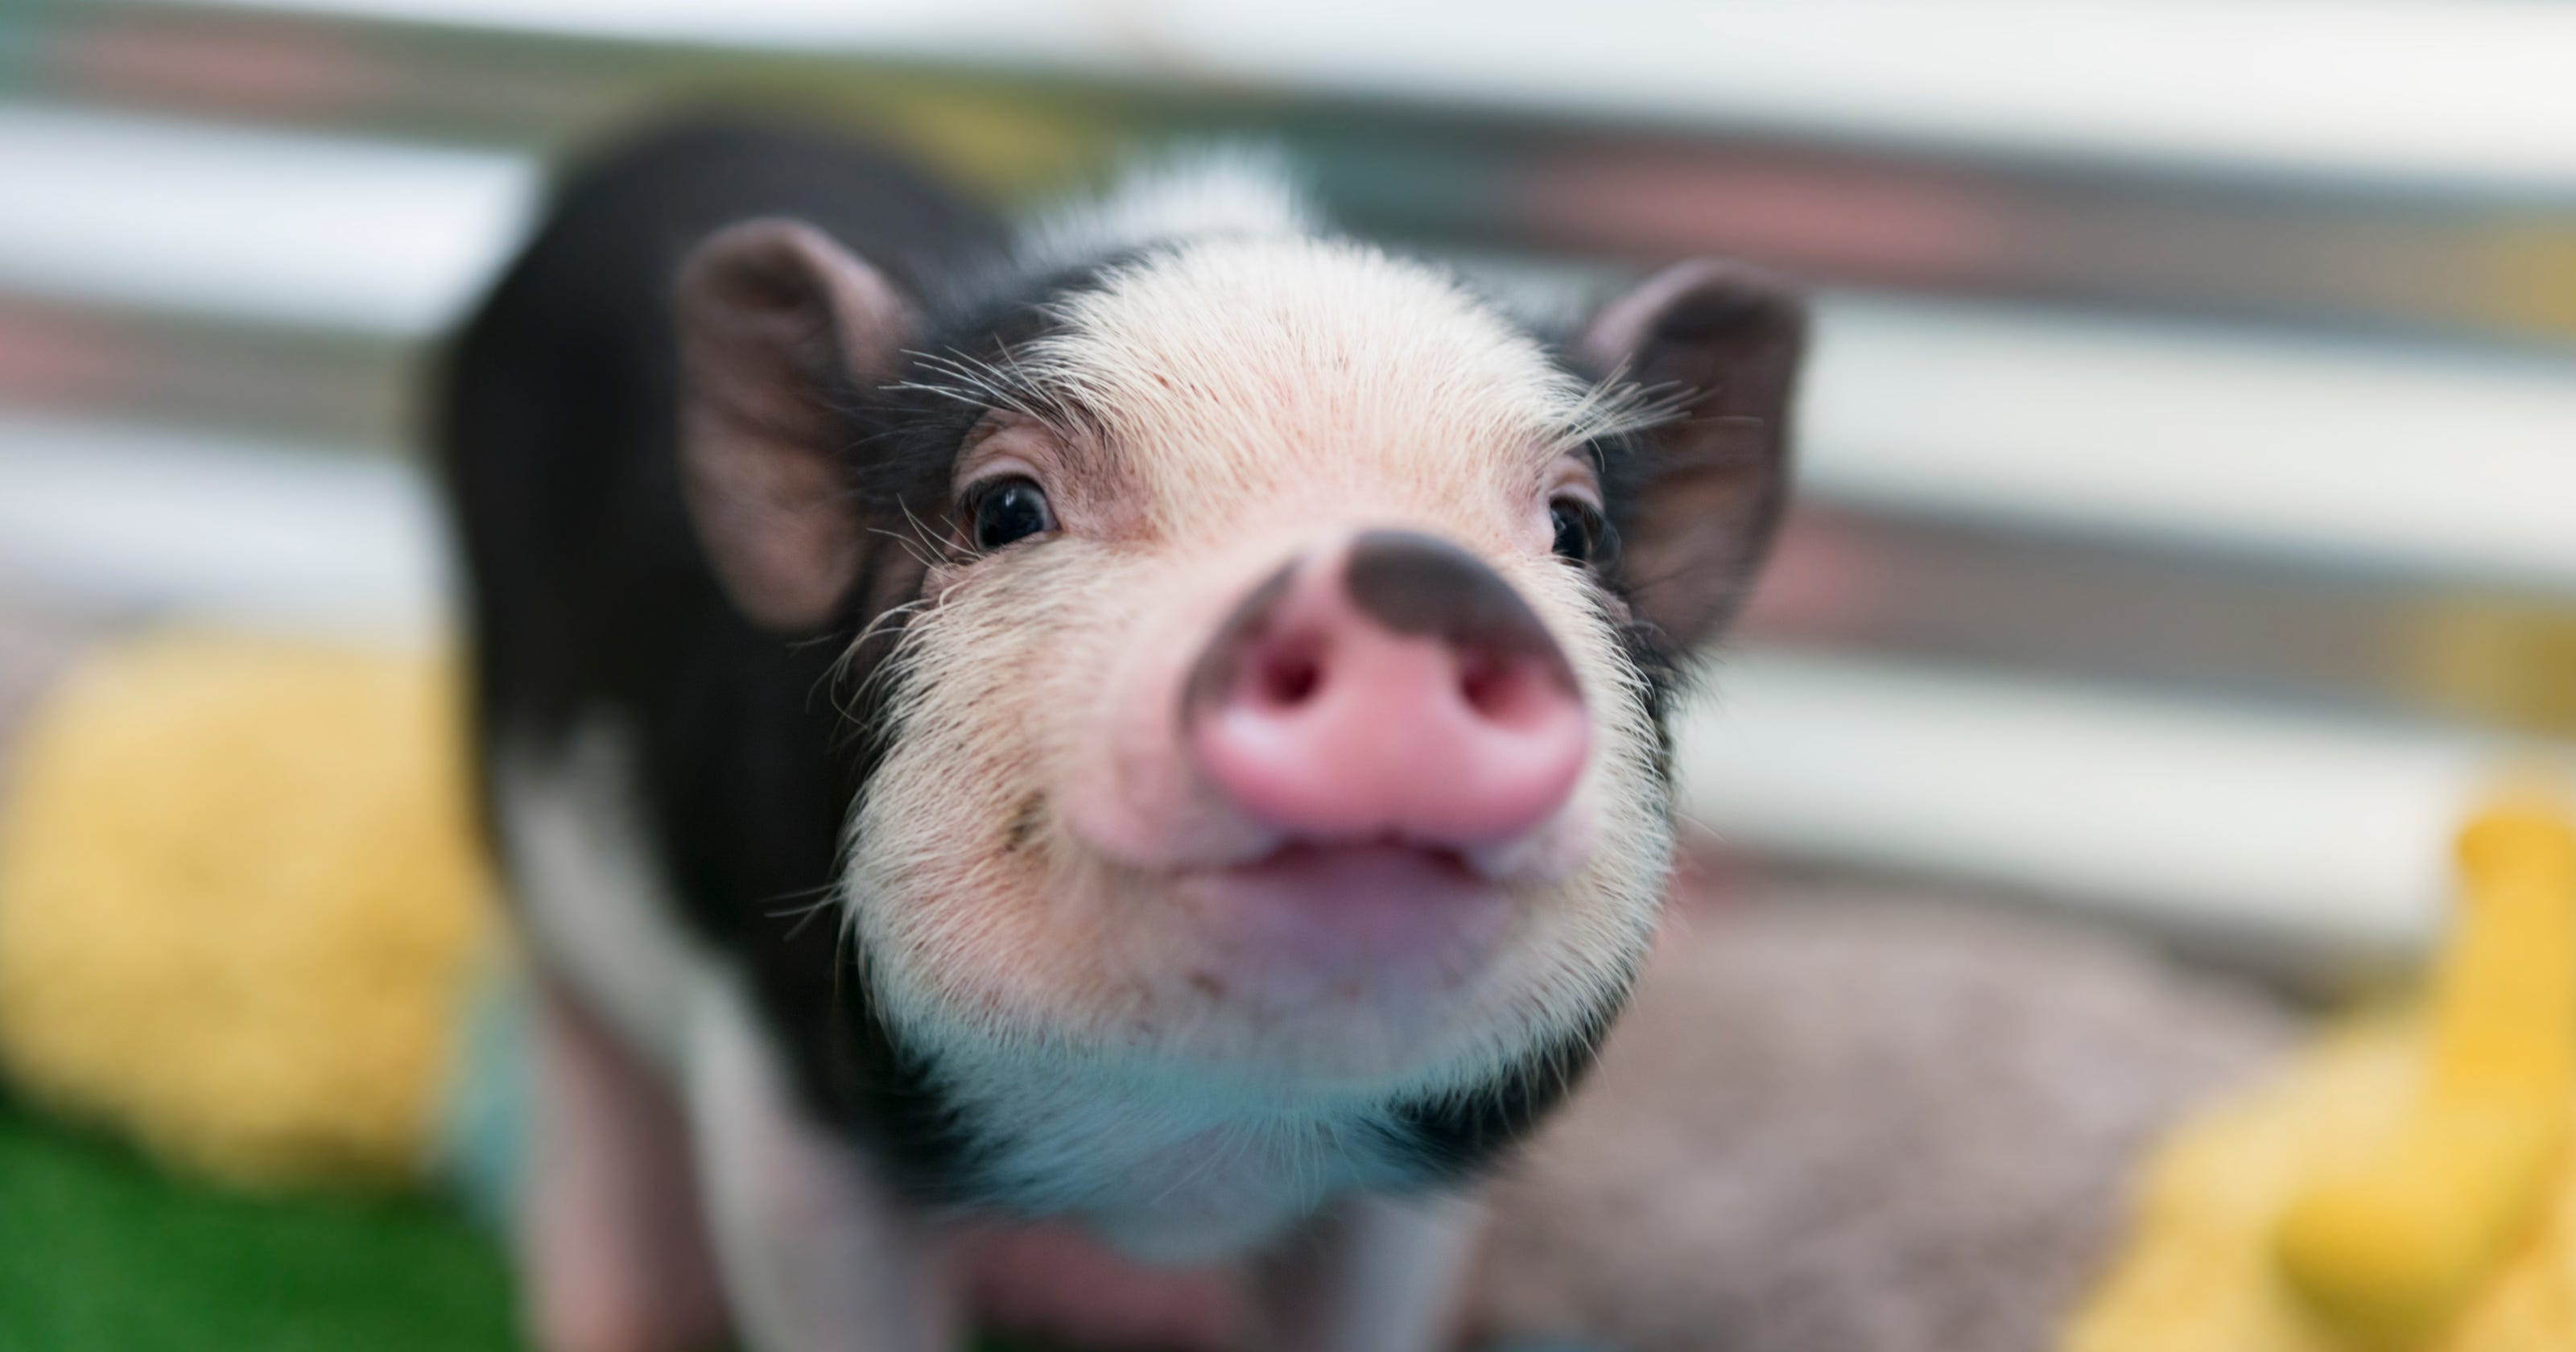 low fat pigs researchers create them with crispr gene editing tool